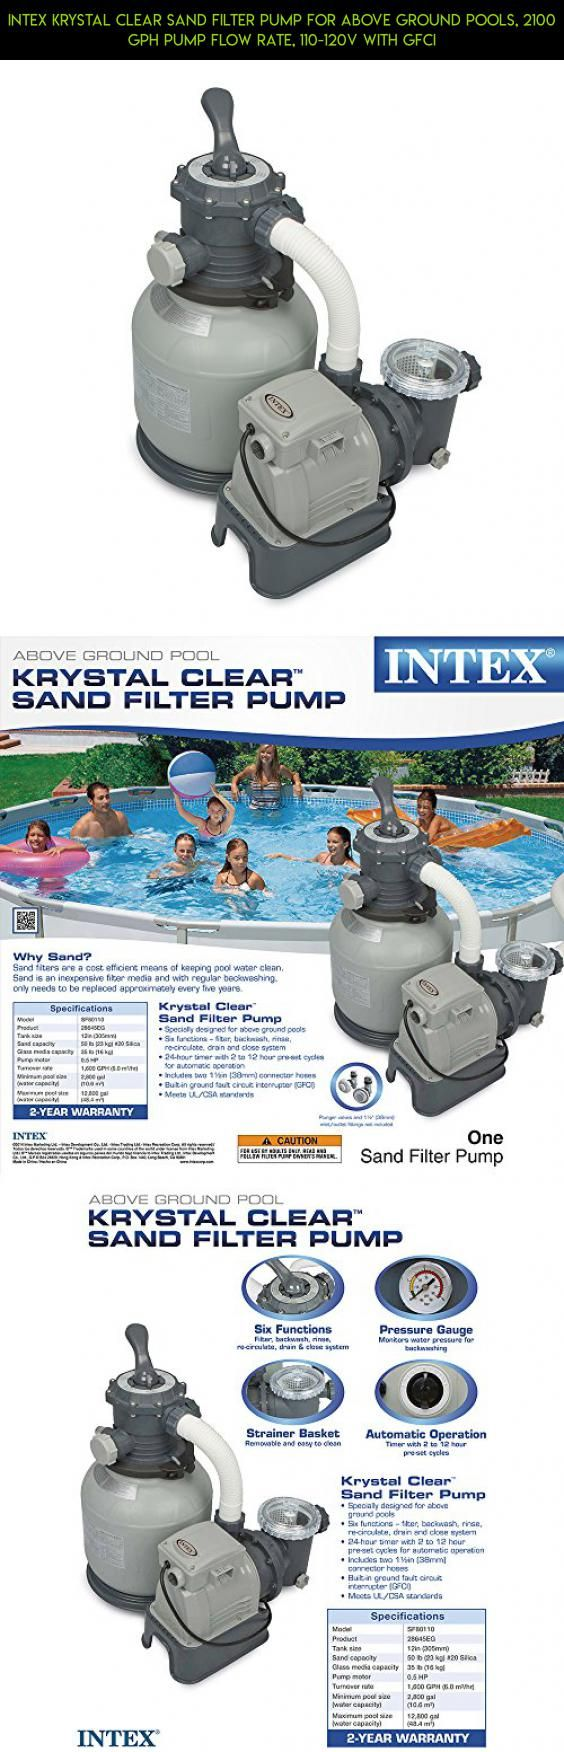 Intex Krystal Clear Sand Filter Pump for Above Ground Pools, 2100 GPH Pump Flow Rate, 110-120V with GFCI #kit #fpv #racing #gadgets #with #products #tech #shopping #technology #pools #filter #camera #parts #plans #drone